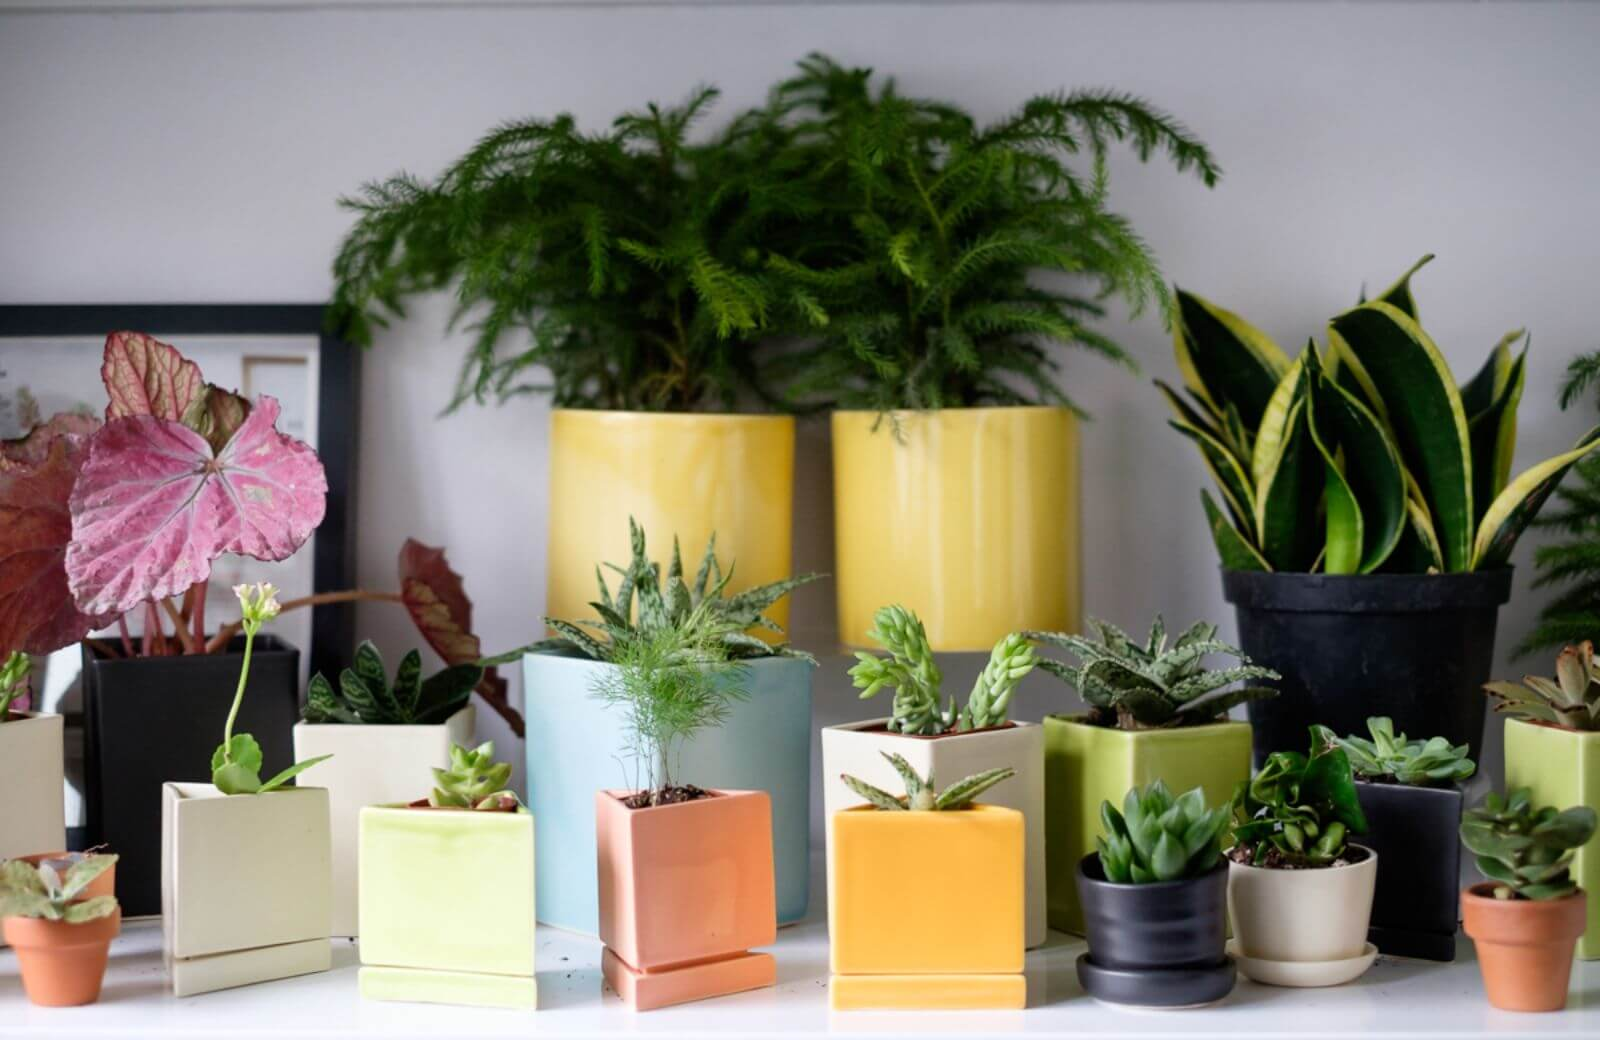 The-Sill-office-design-ceramics-and-plants